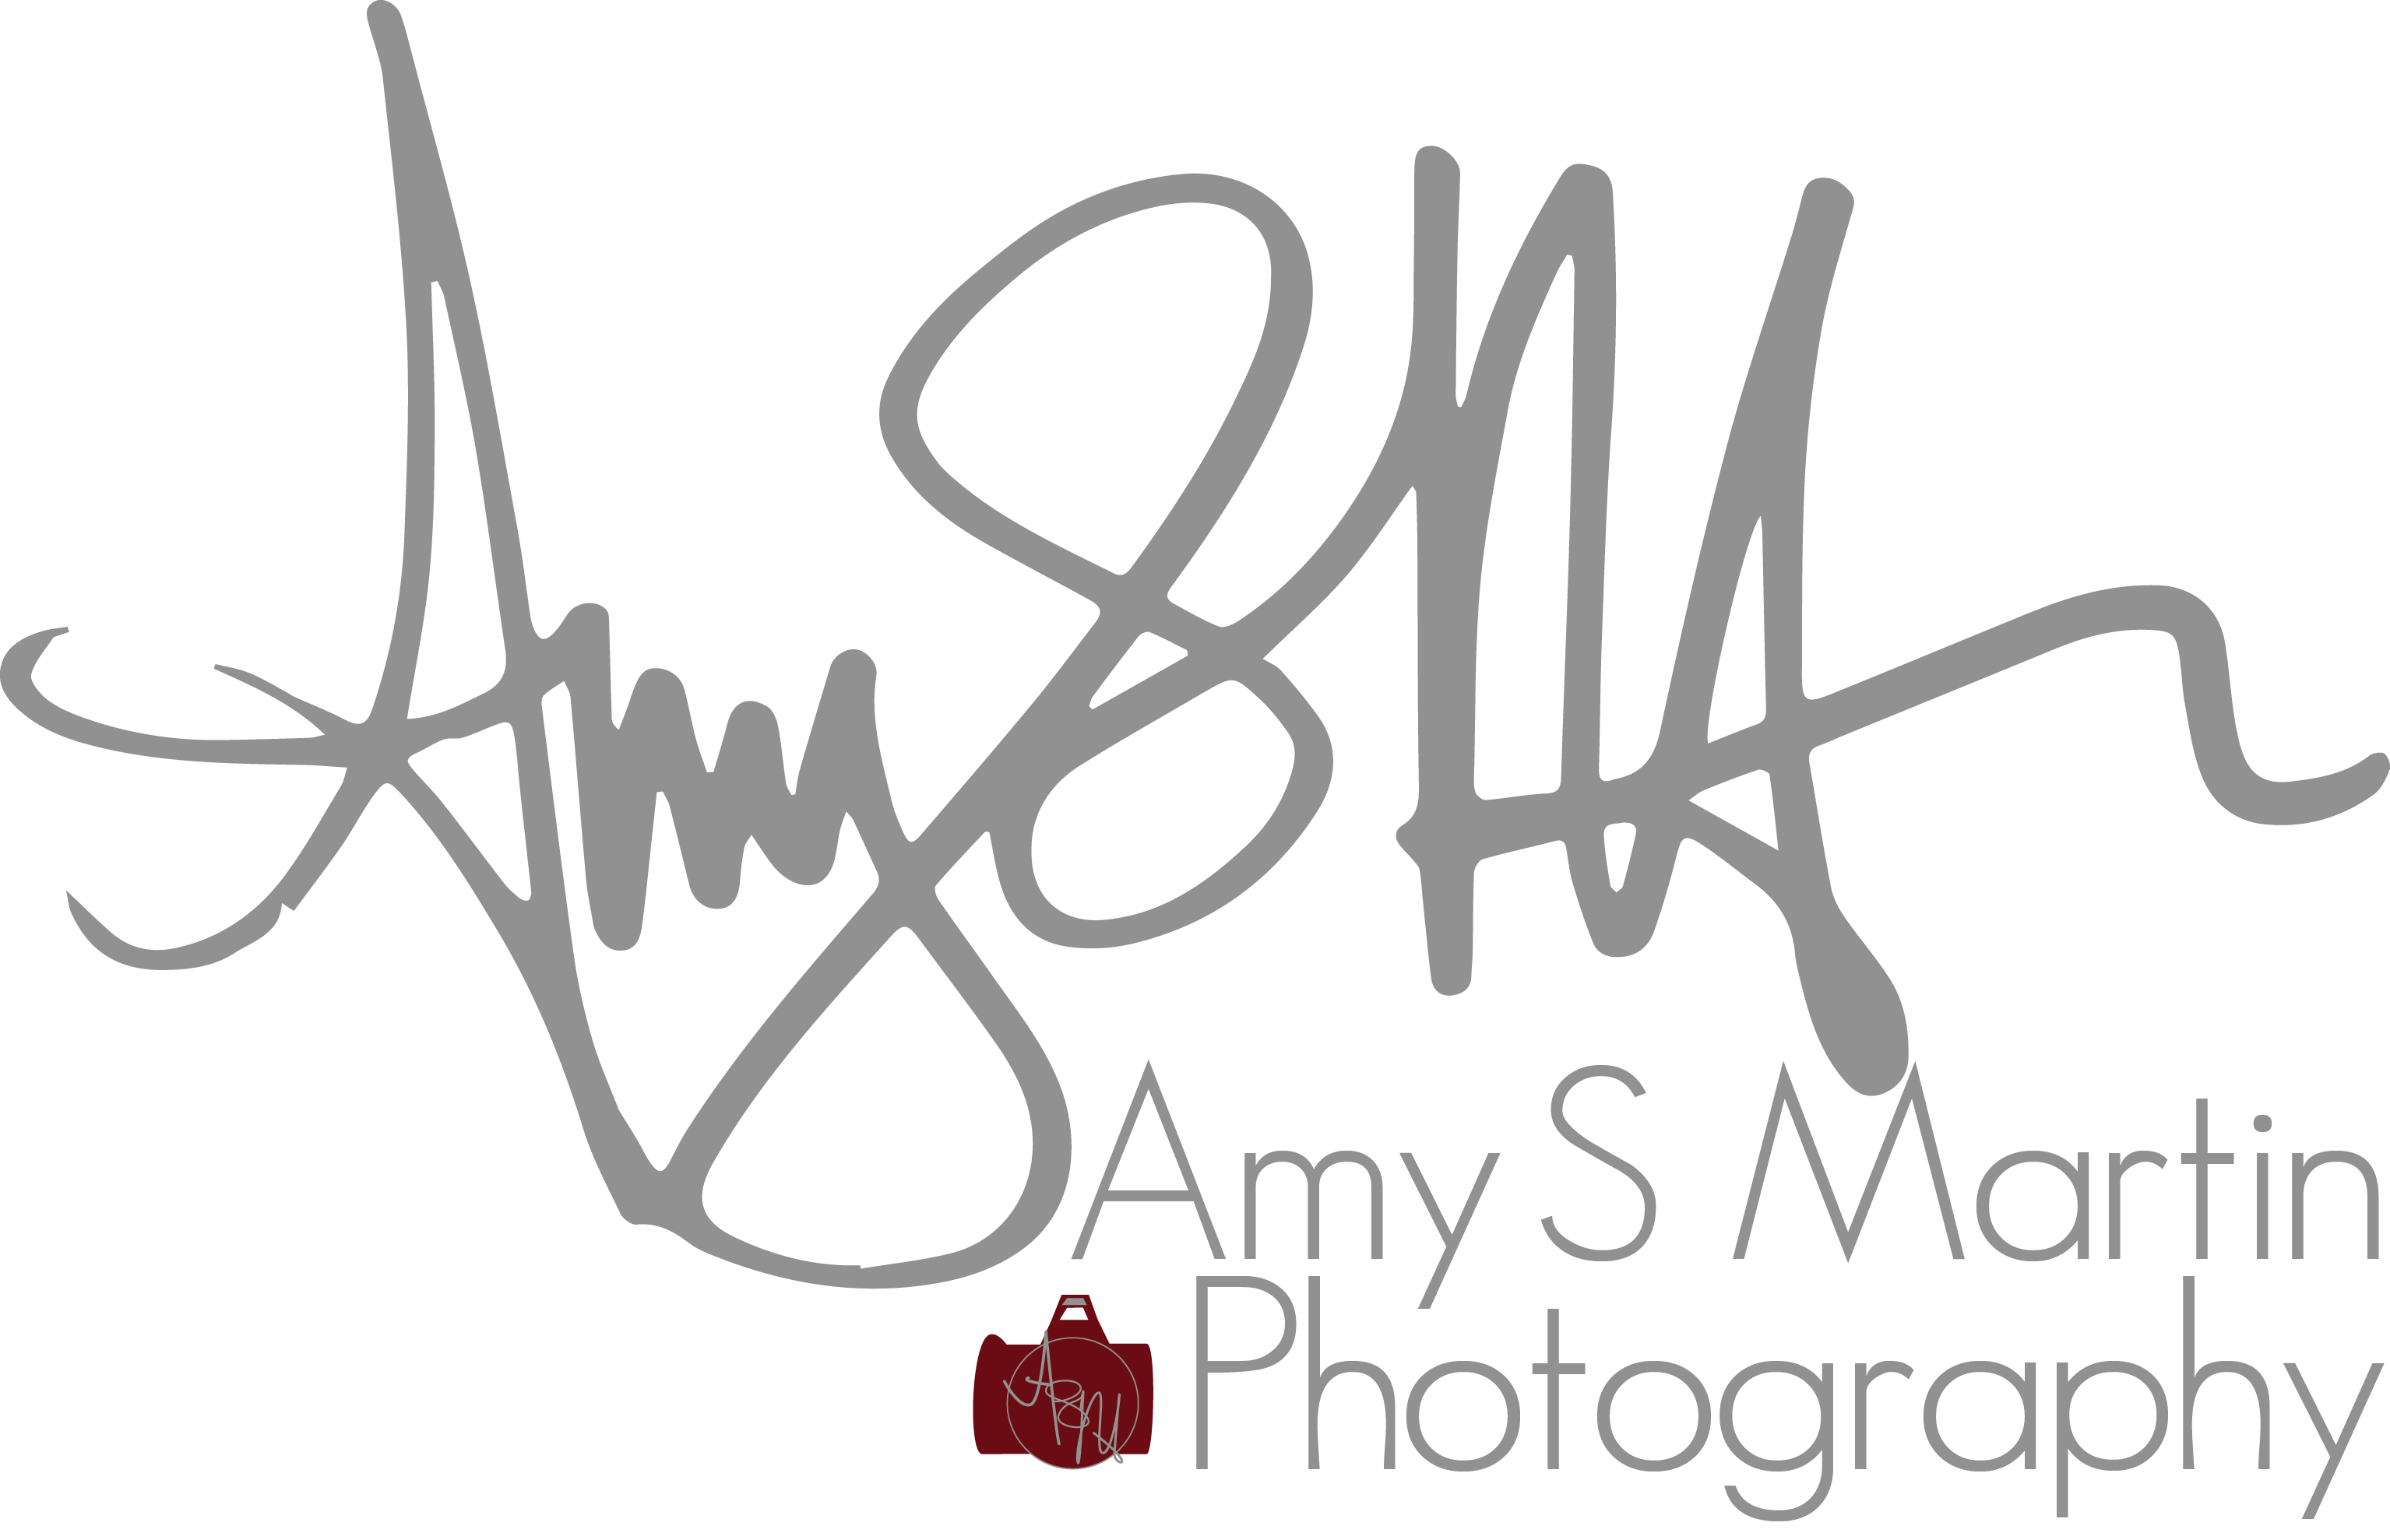 Amy S. Martin Photography